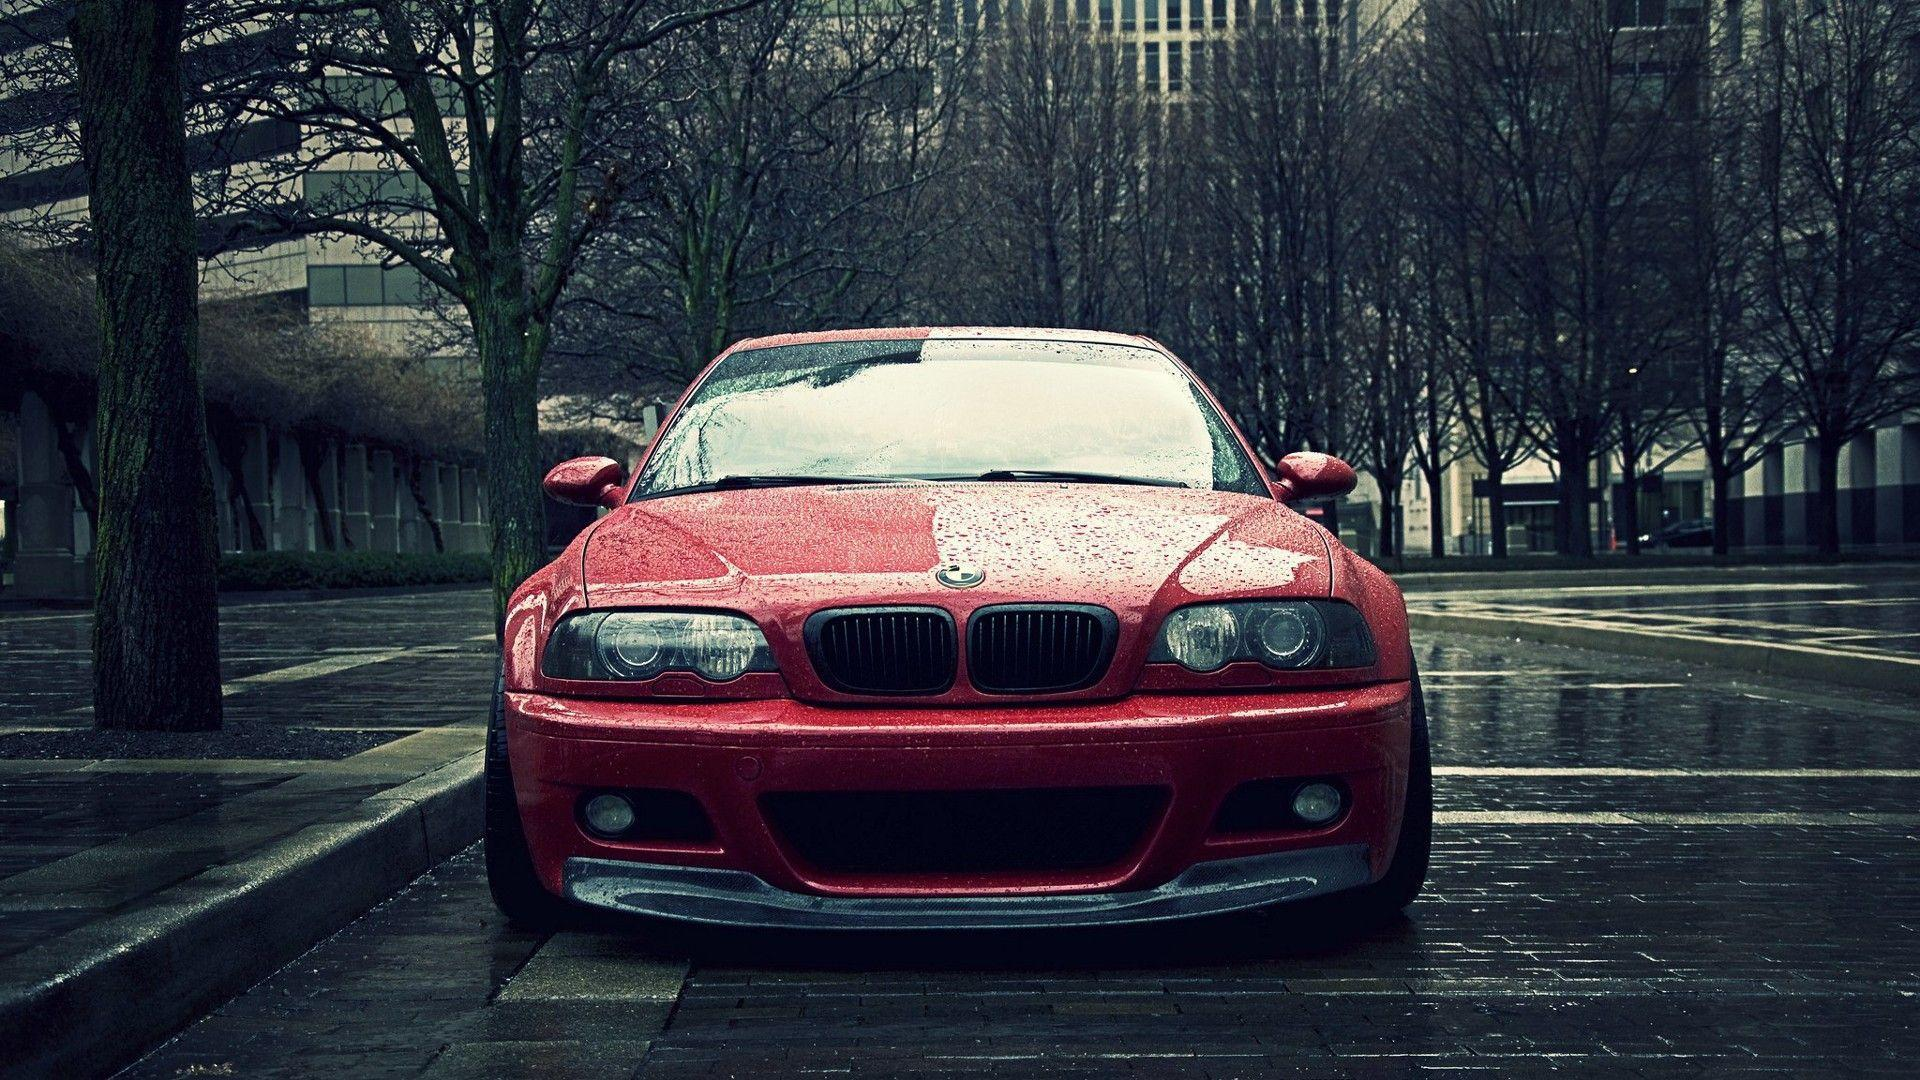 BMW trees rain cars tuning tuned stance Bmw m3 e46